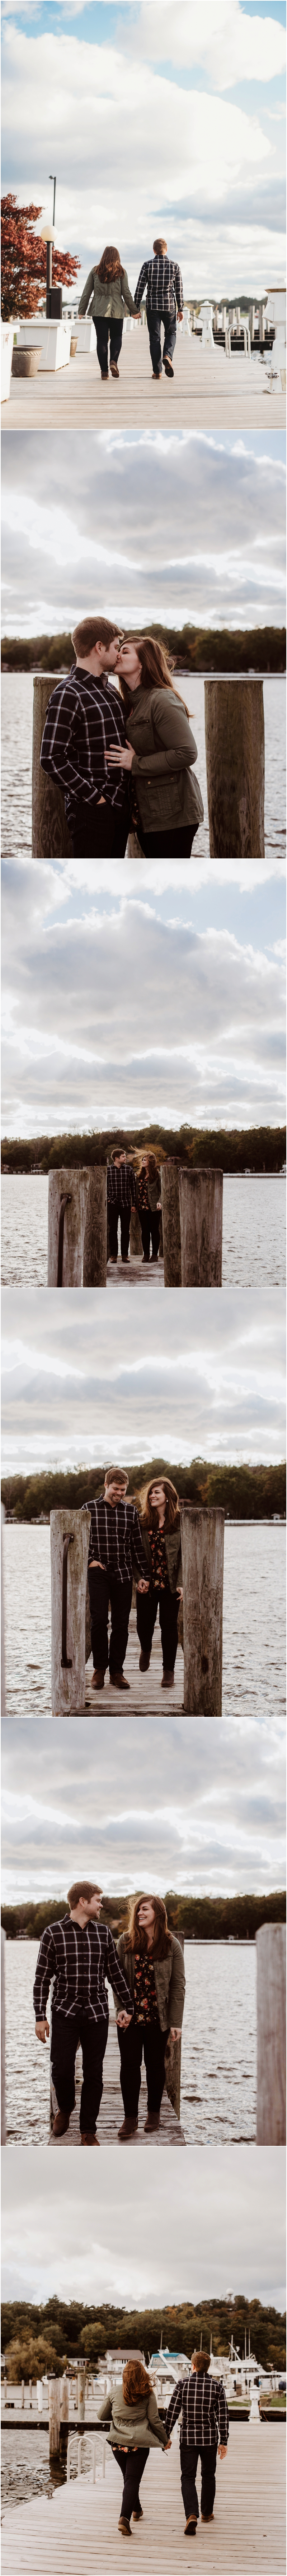 Saugatuck-Engagement-Photography-4900.jpg